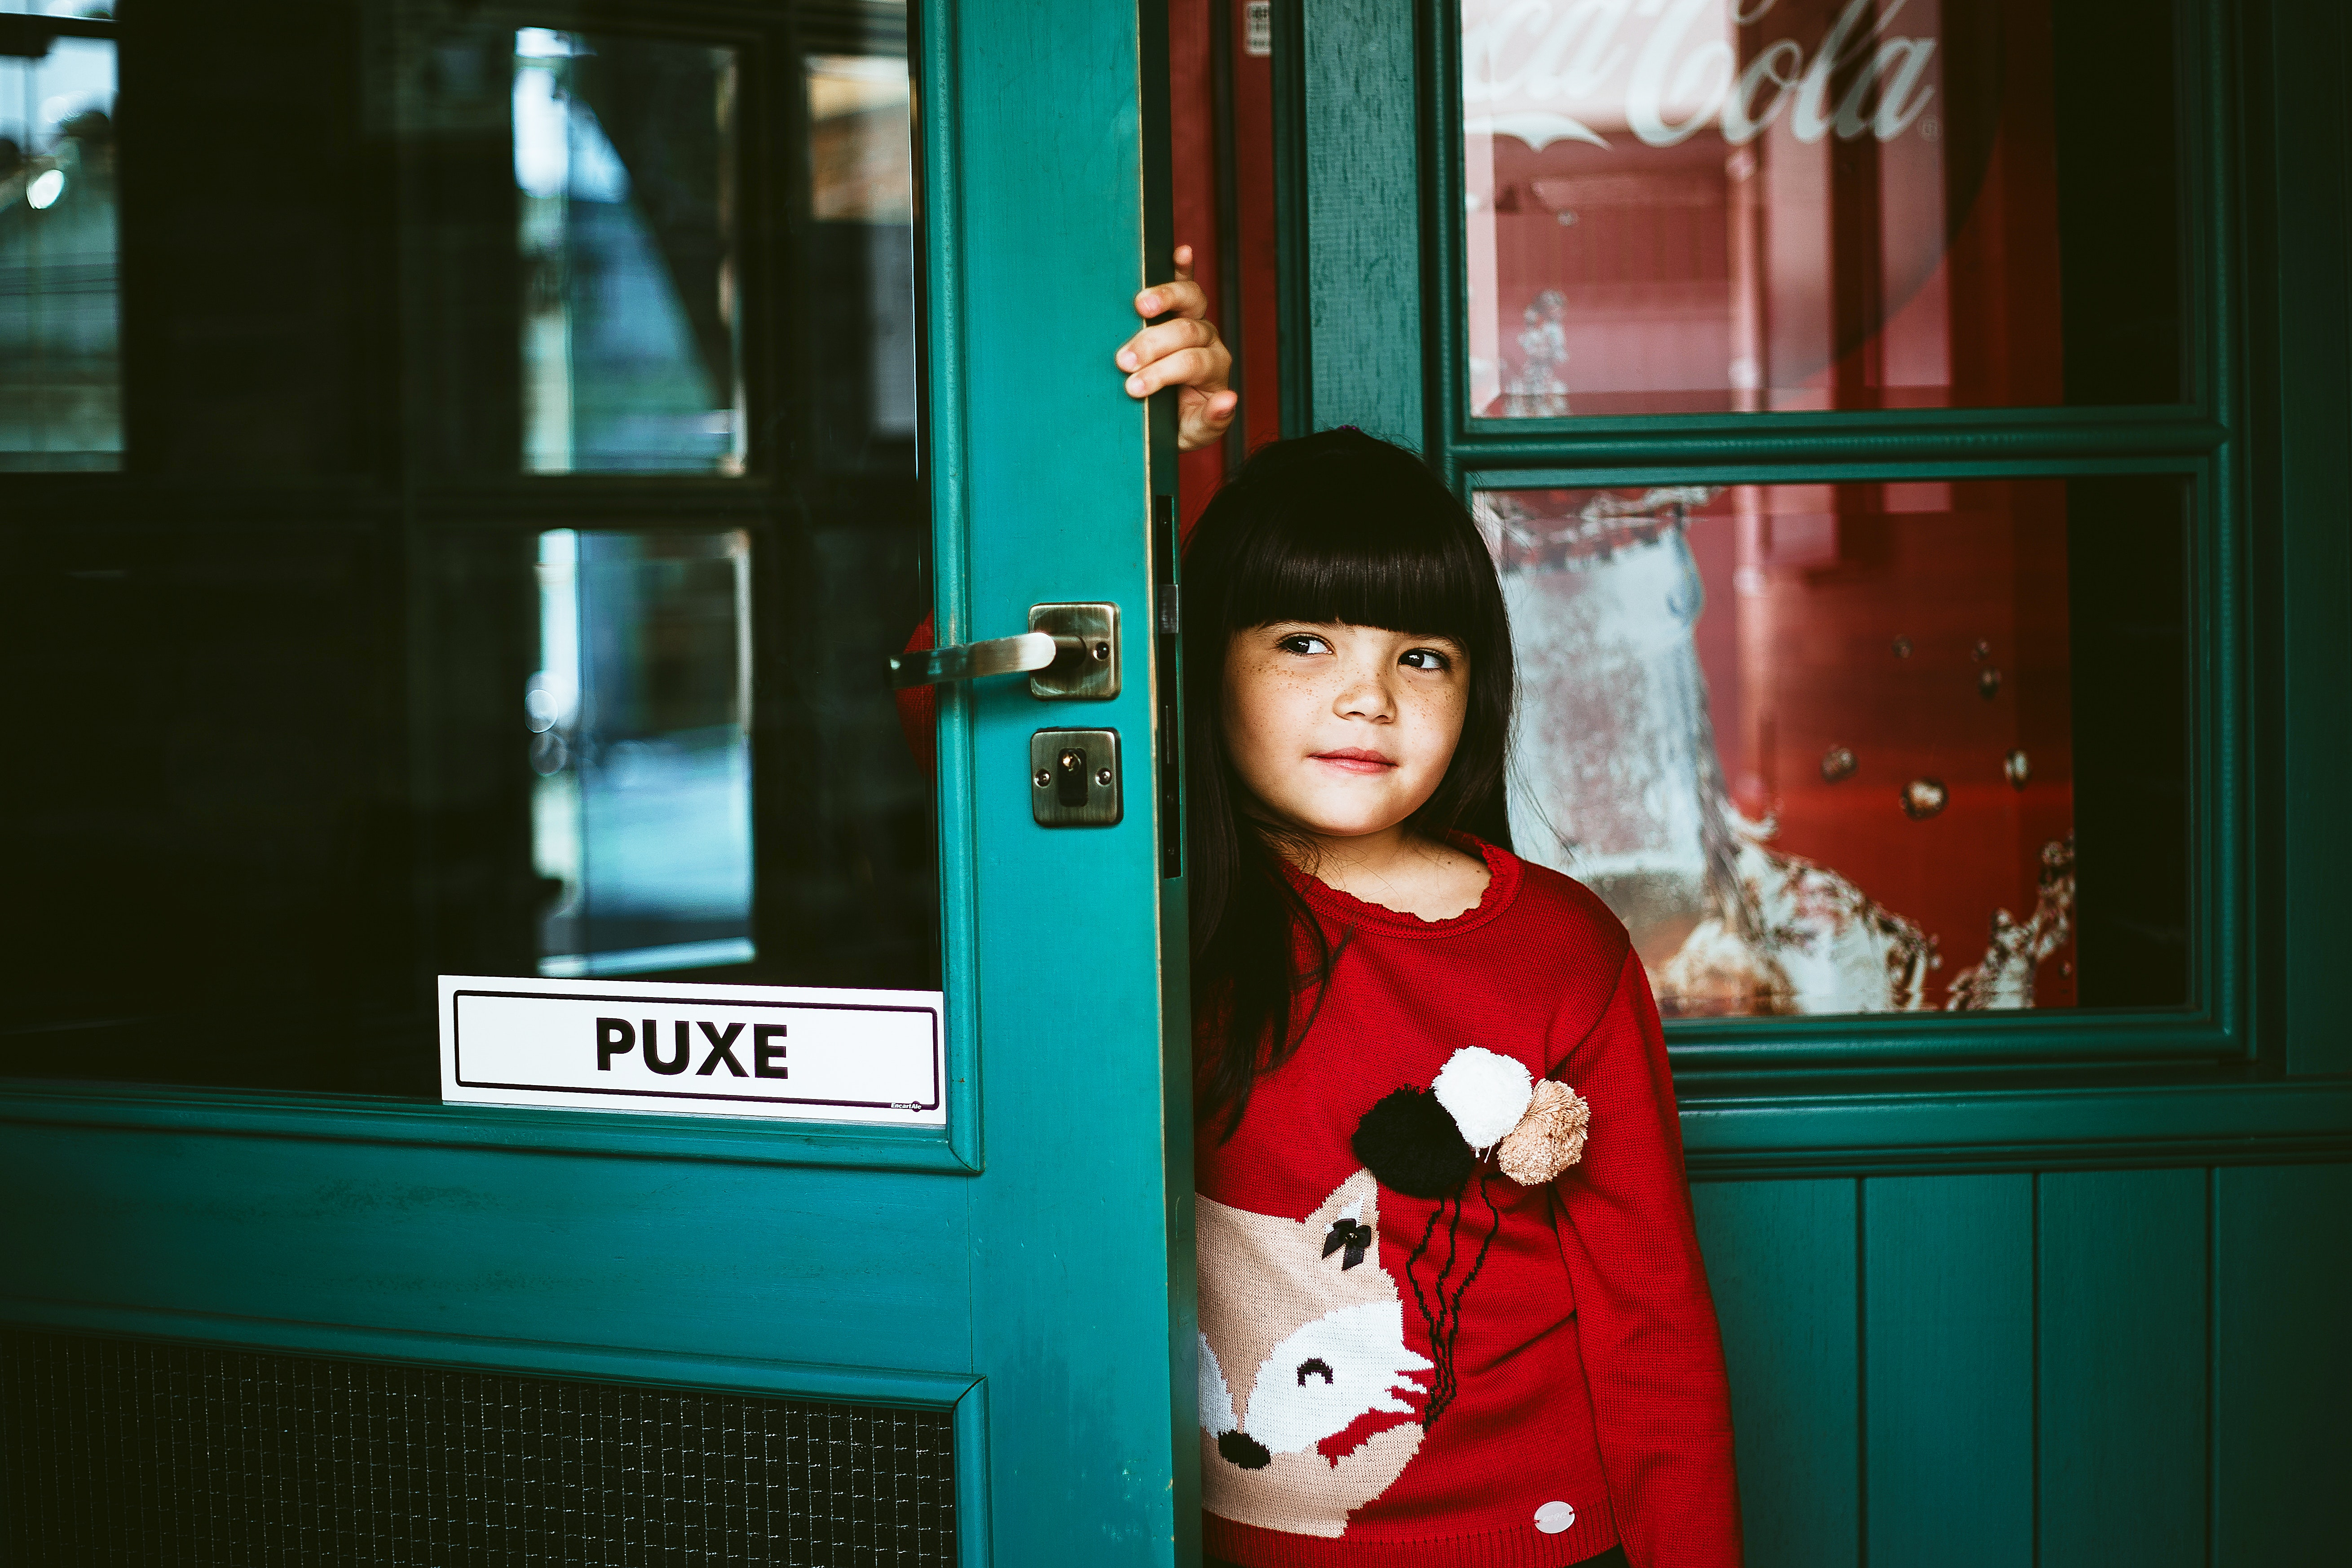 A girl wearing a red long-sleeved shirt leaning on a door